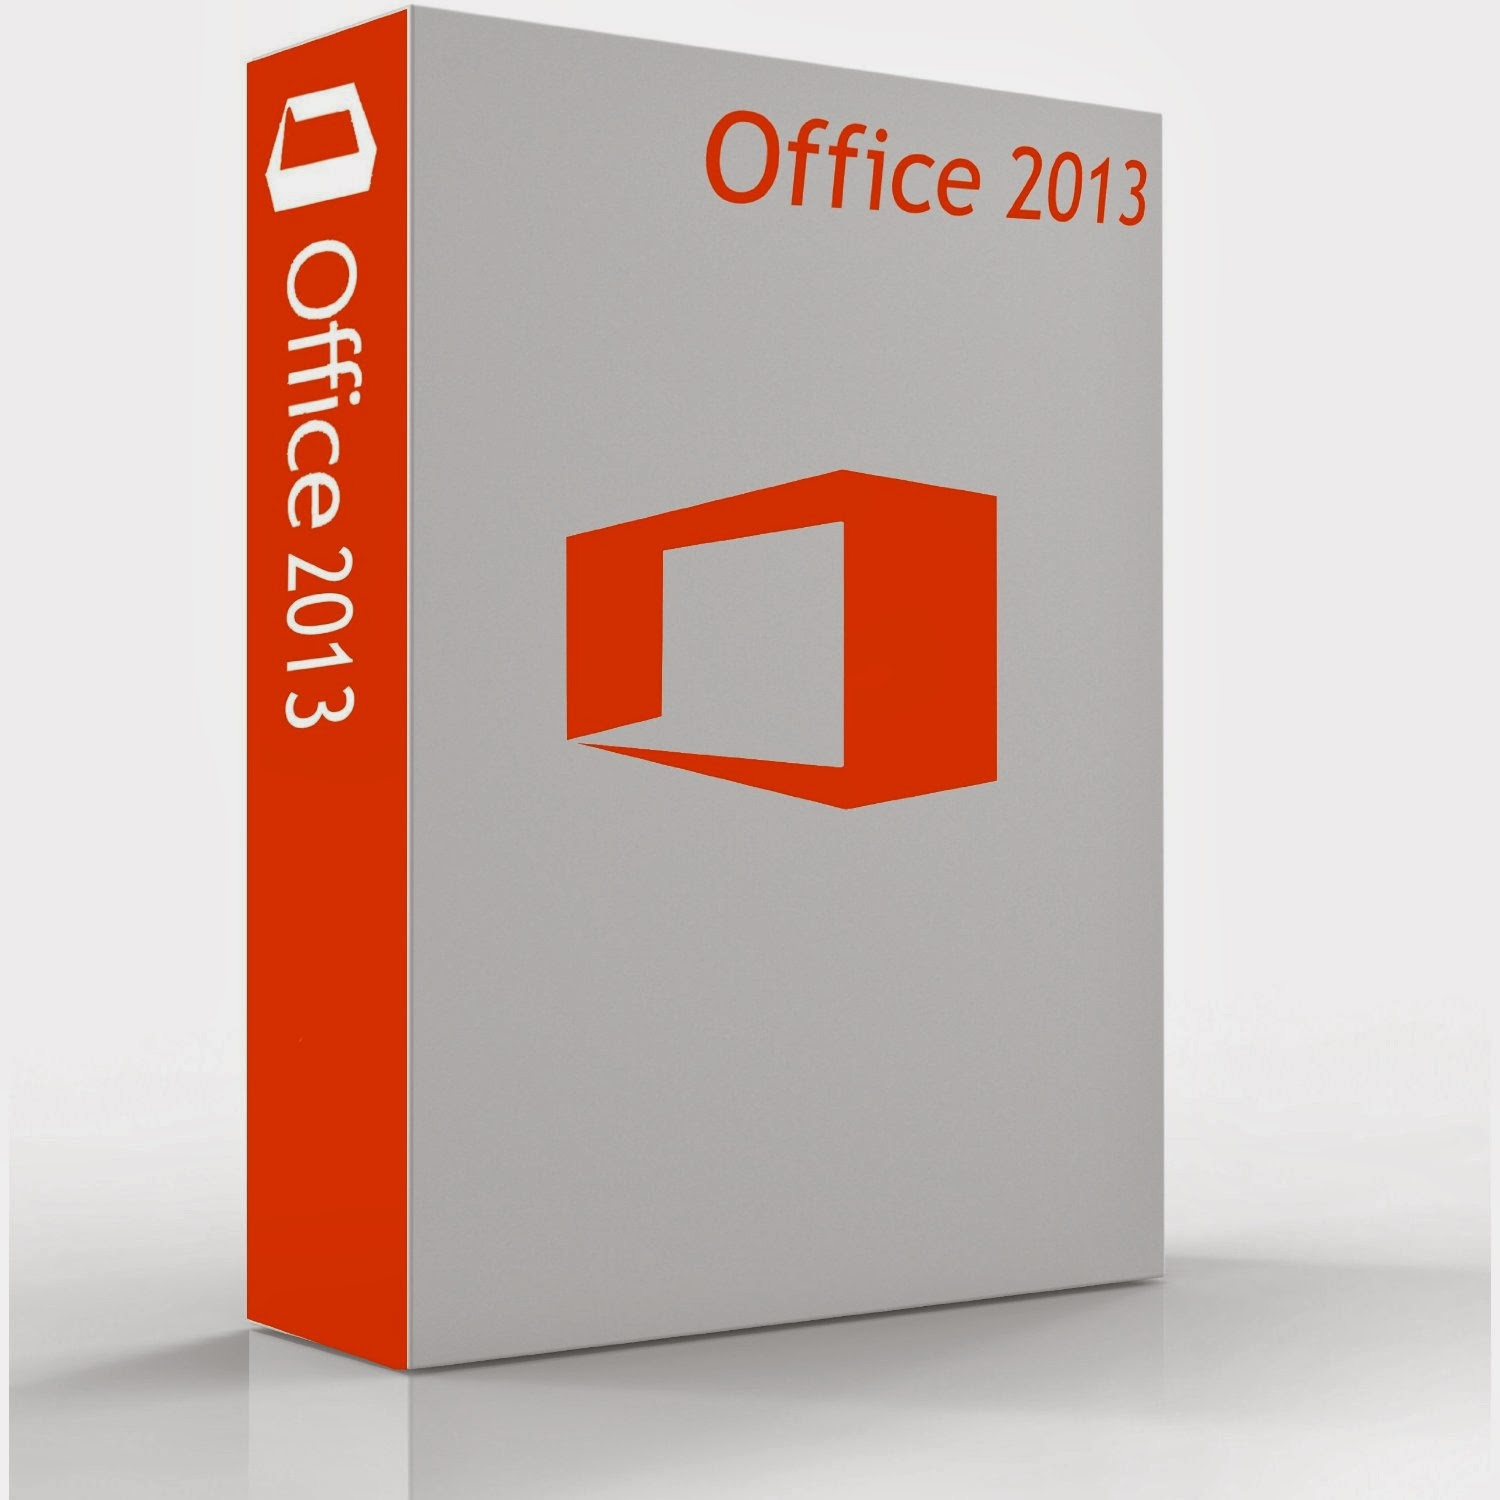 DESCARGAR OFFICE 2013 GRATIS 32 Y 64 BITS + CRACK